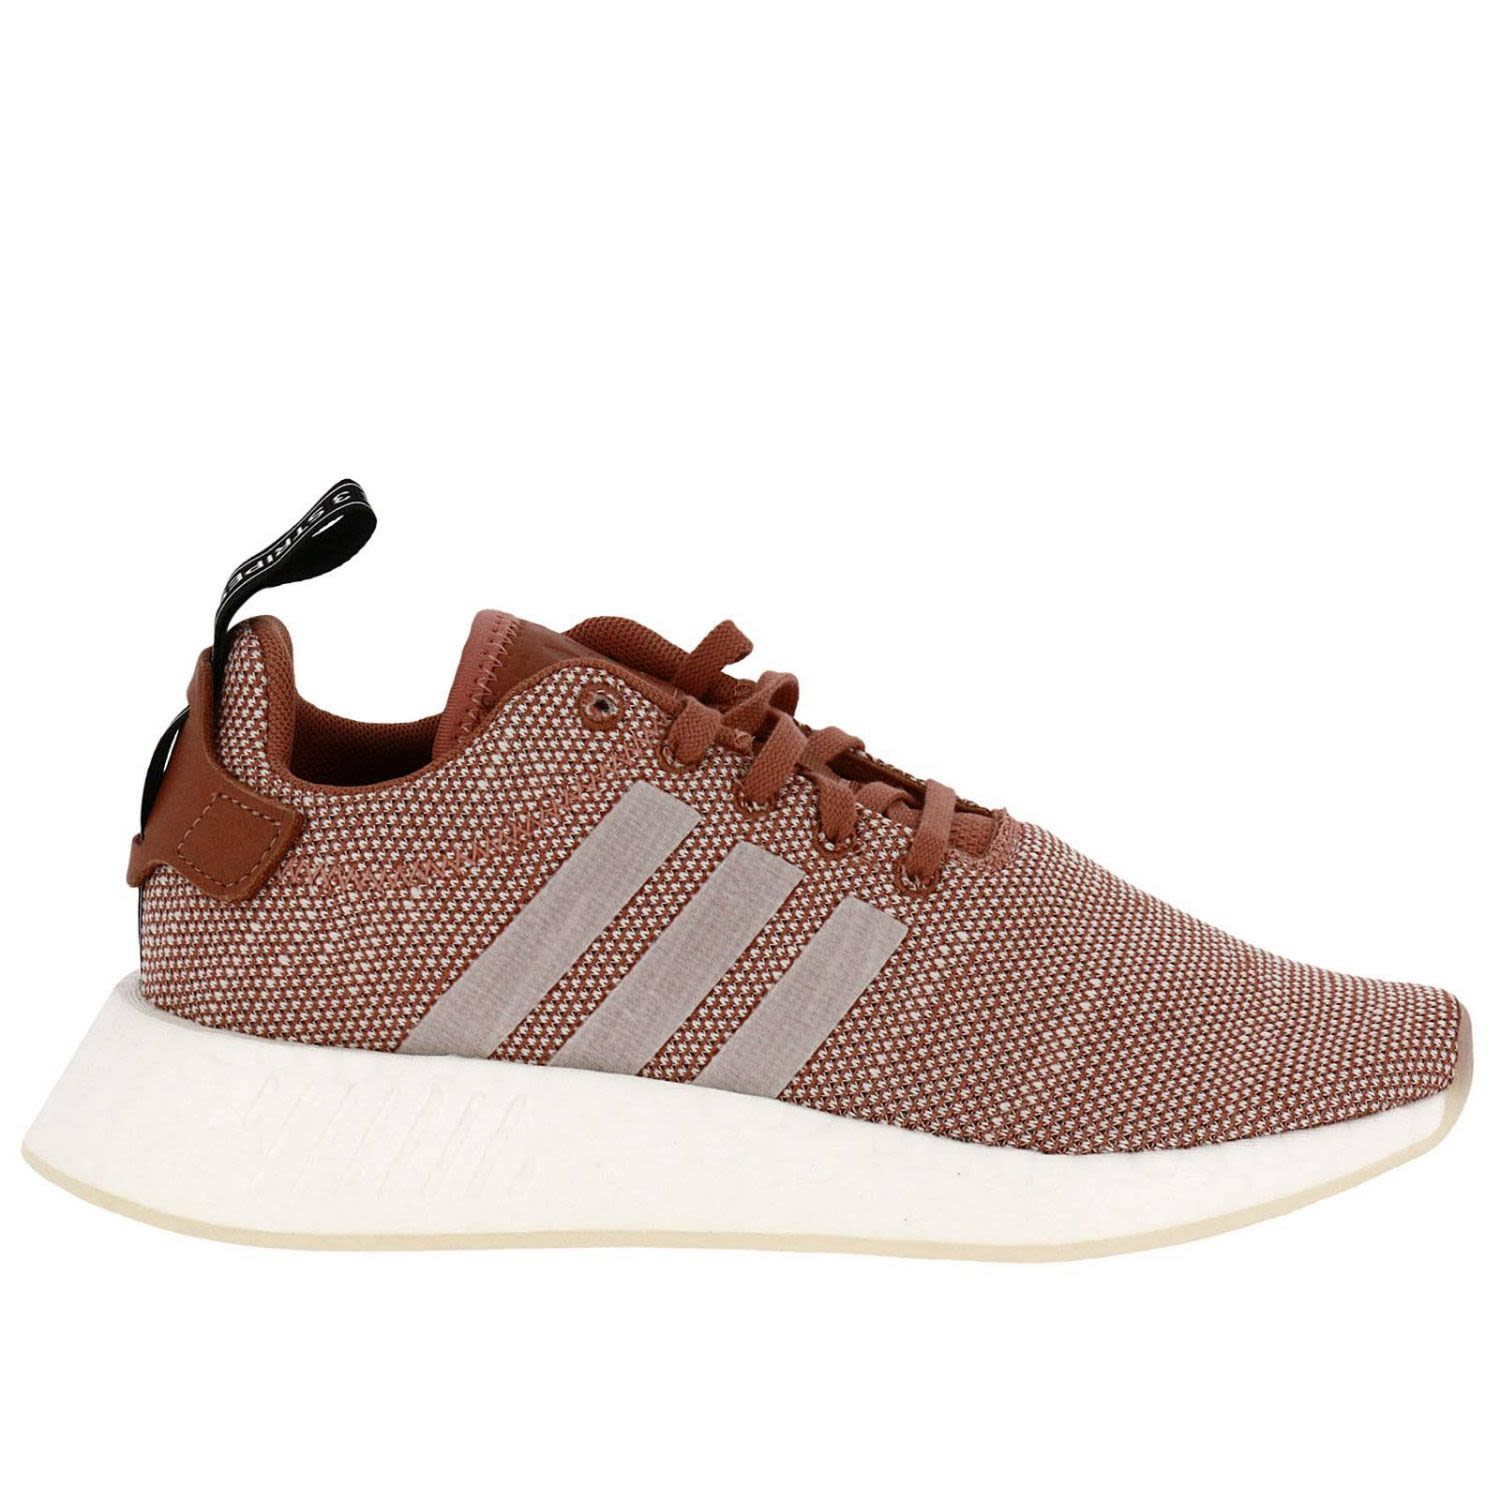 Sneakers Adidas Originals Nmd-r2 W Primeknit Sneakers With Micro Effect 9993656